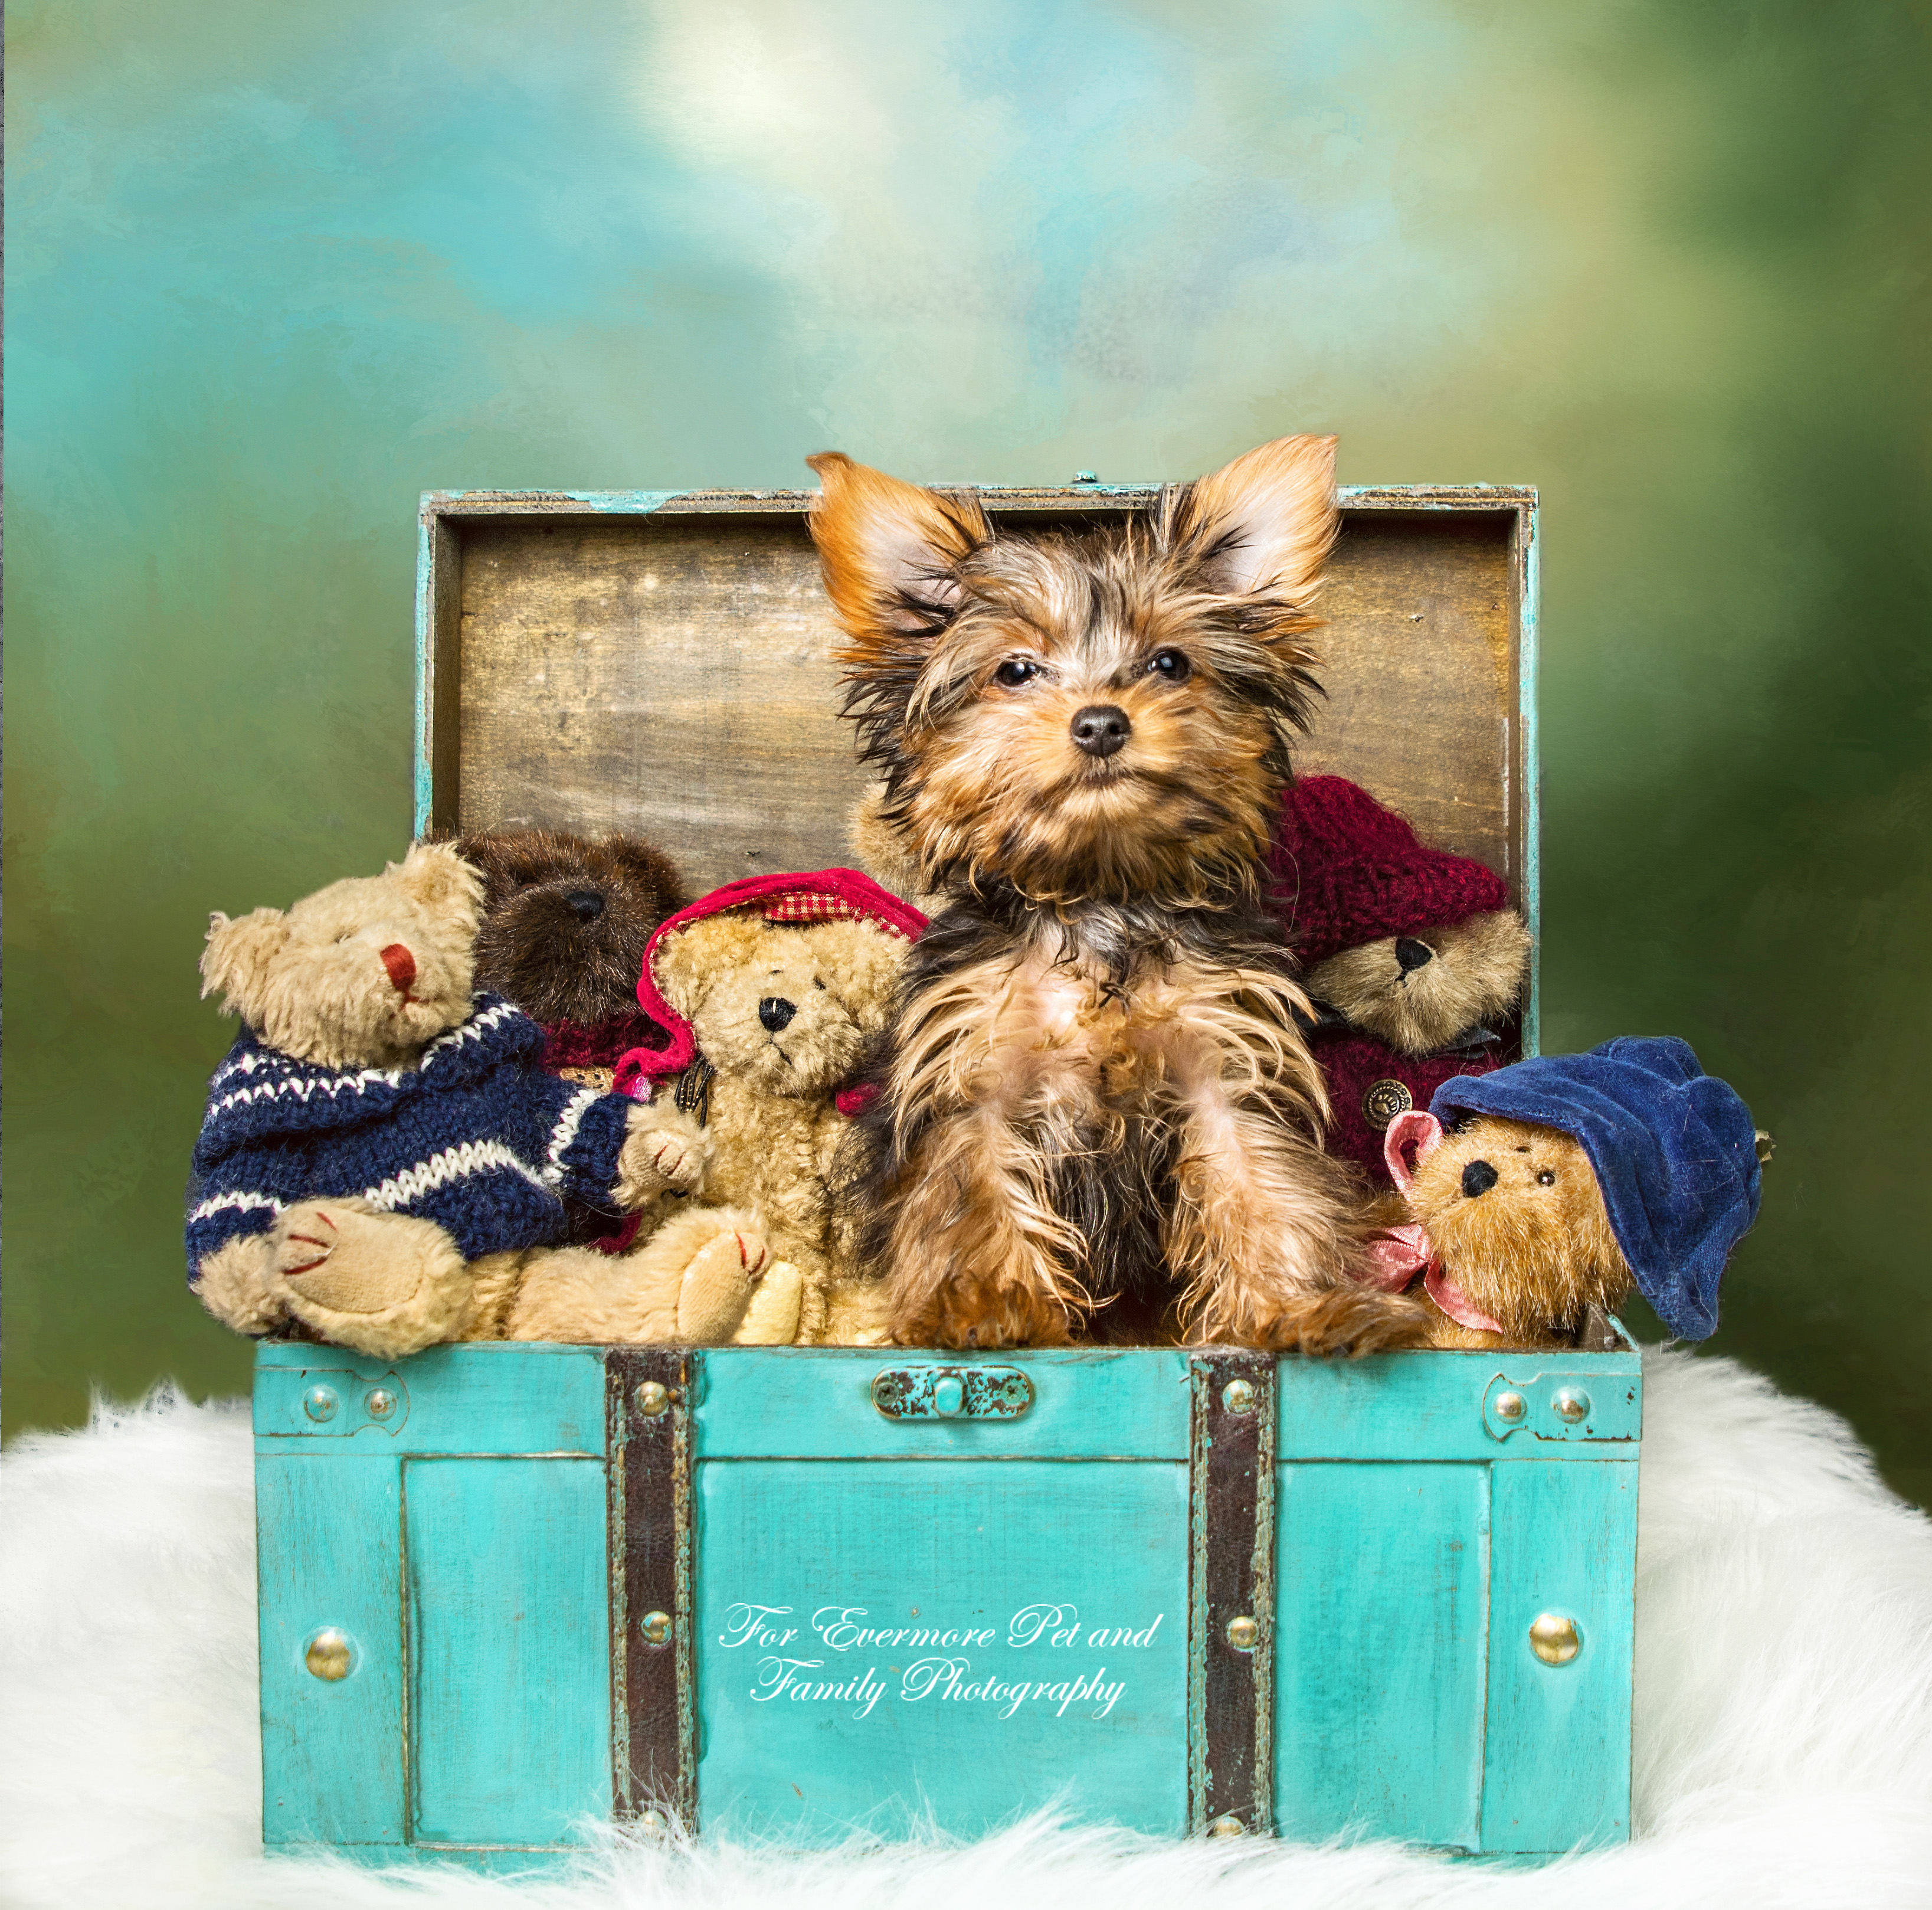 Puppy Teddy and his bear friends